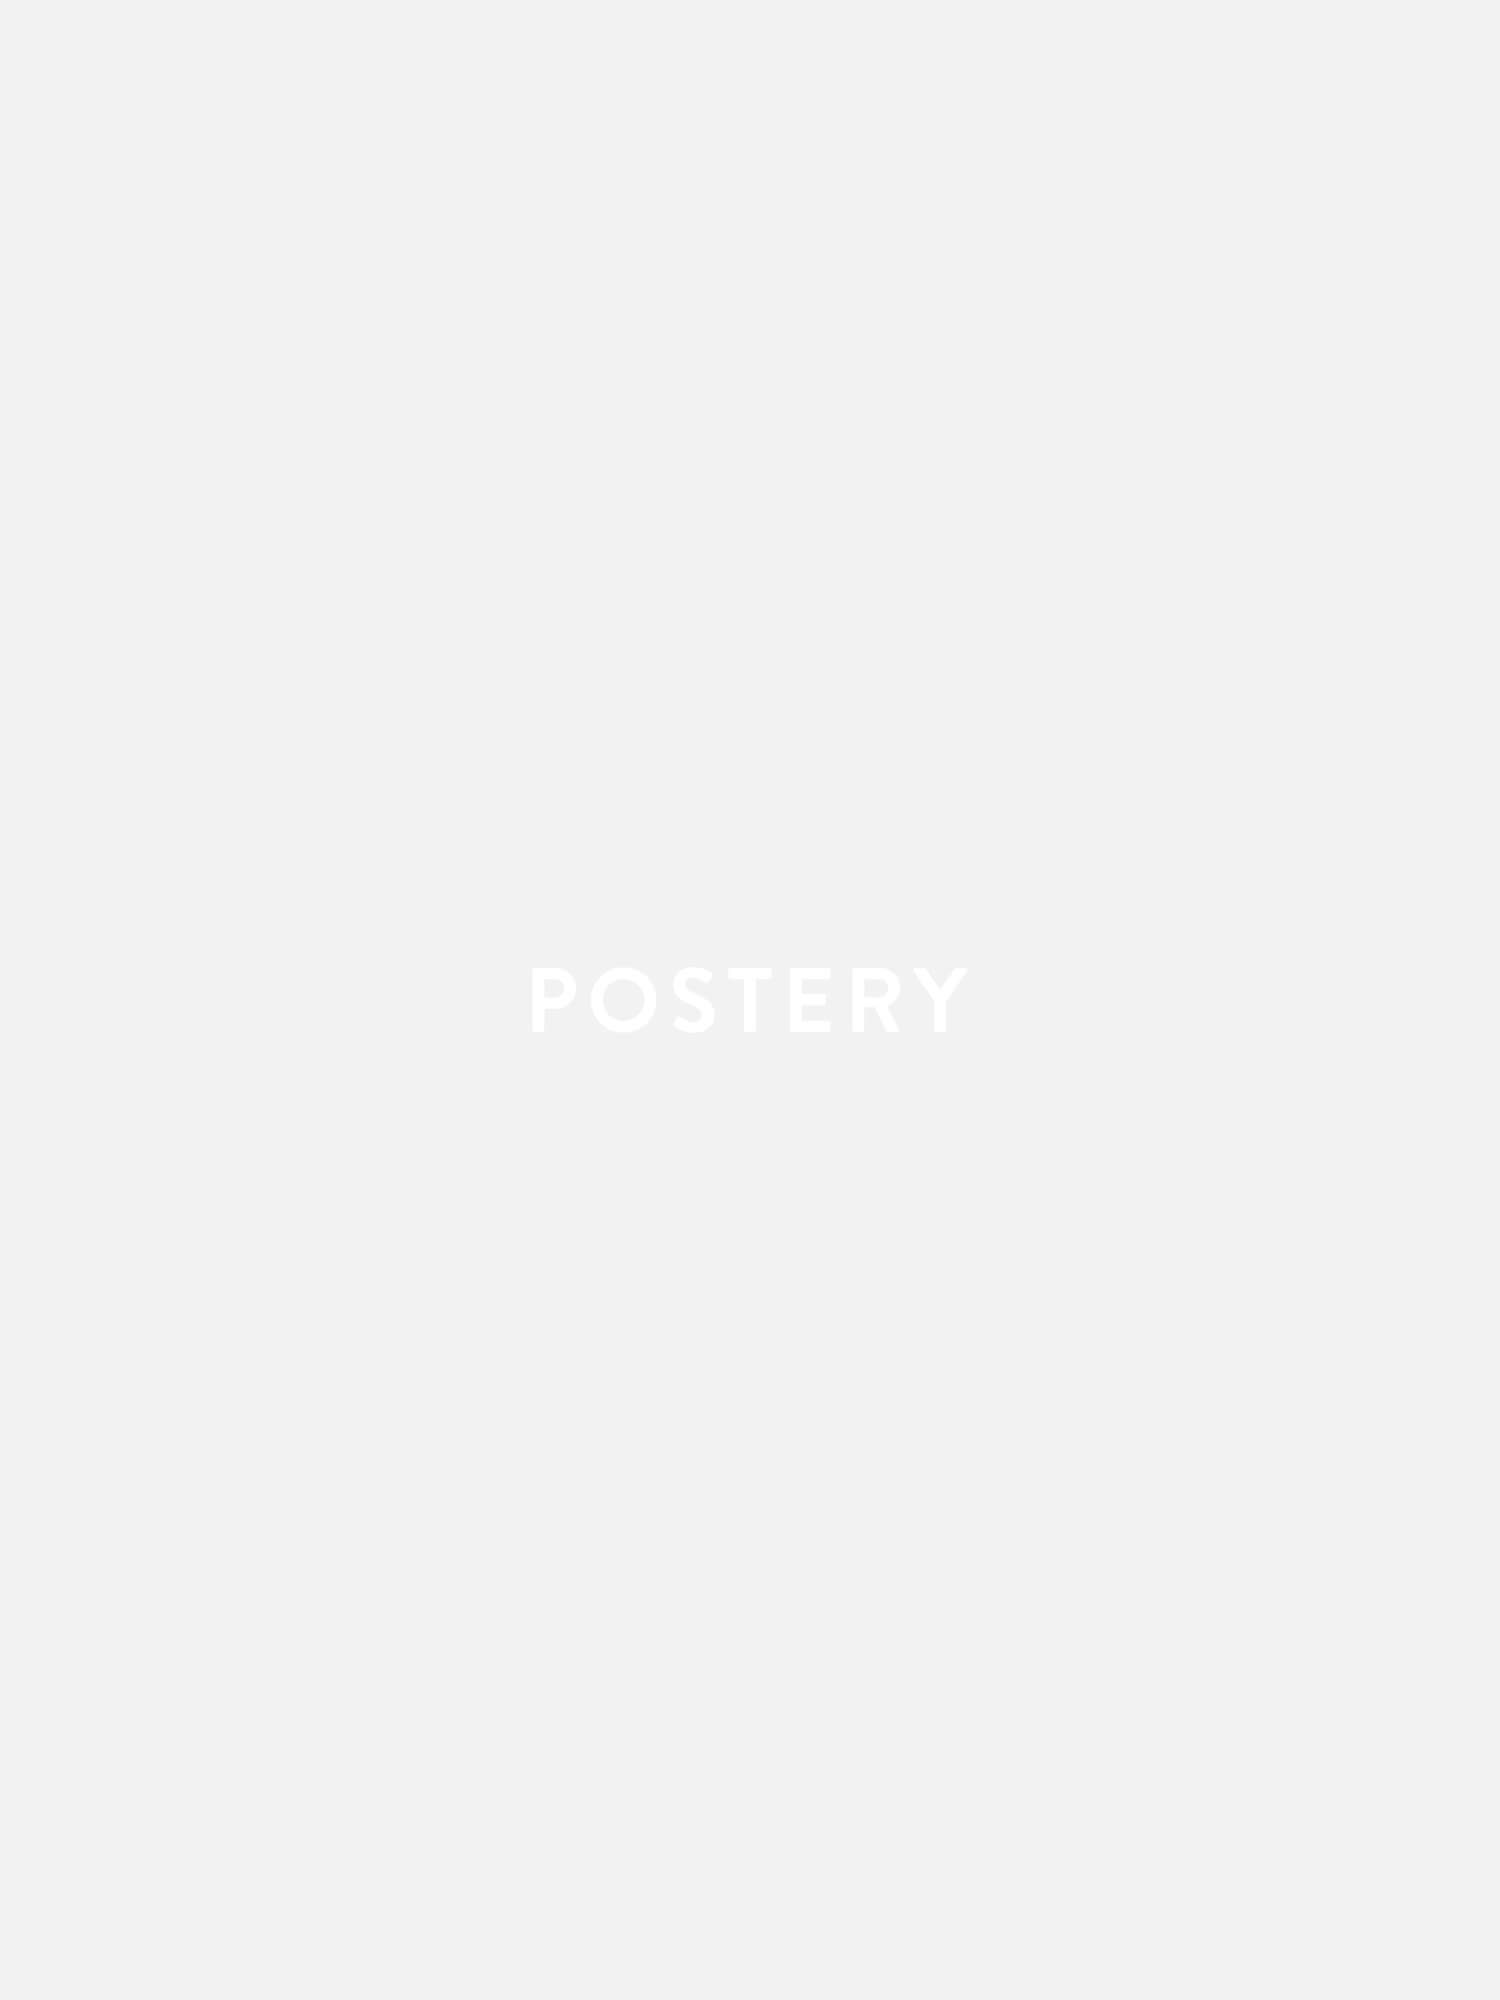 Oysters on Ice Poster